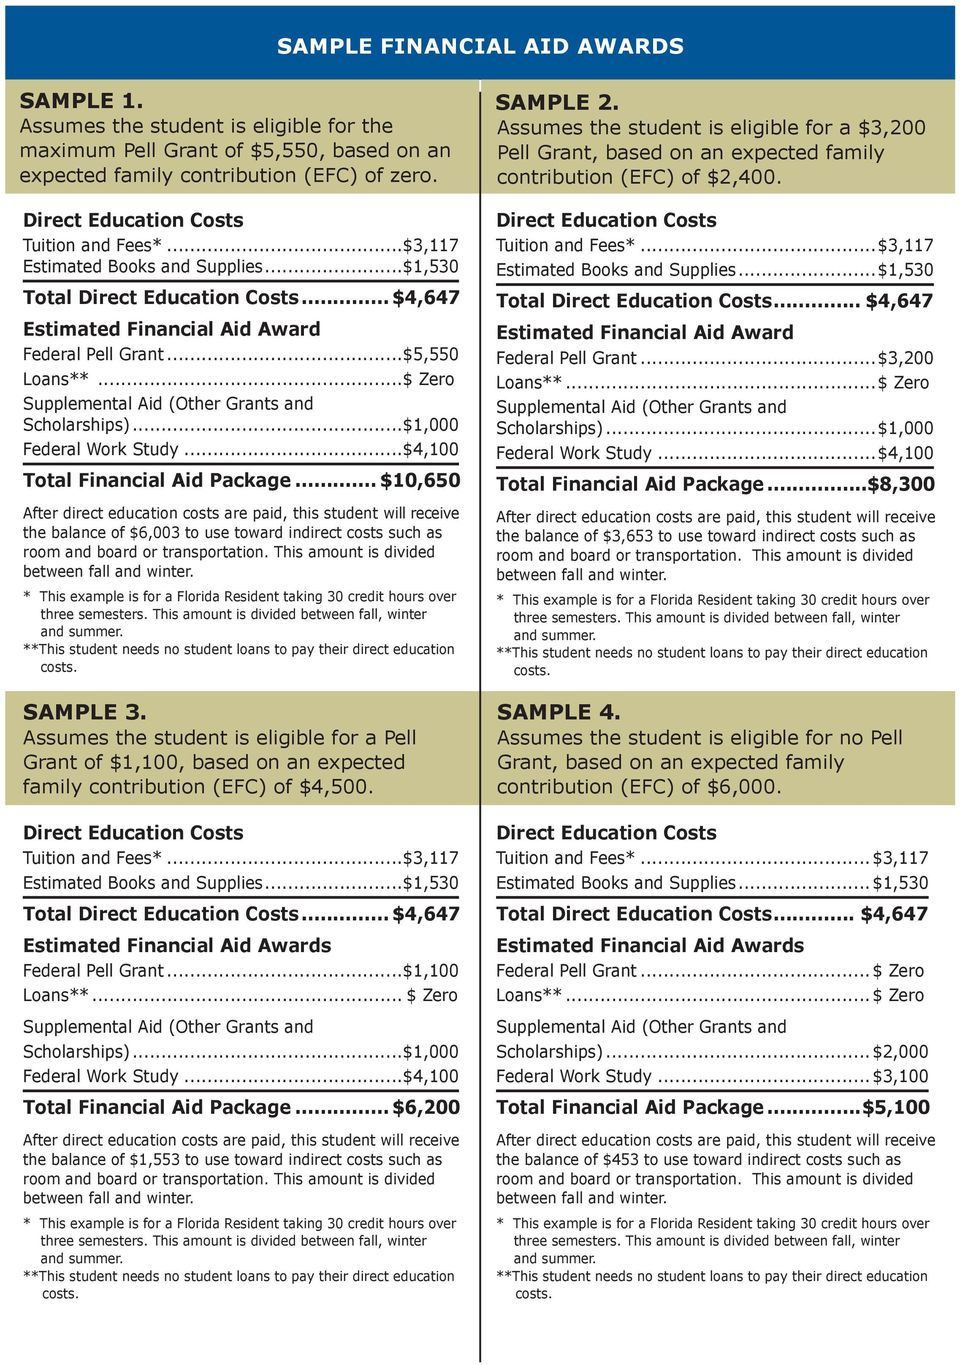 ..$4,100 Total Financial Aid Package... $10,650 the balance of $6,003 to use toward indirect costs such as SAMPLE 3.